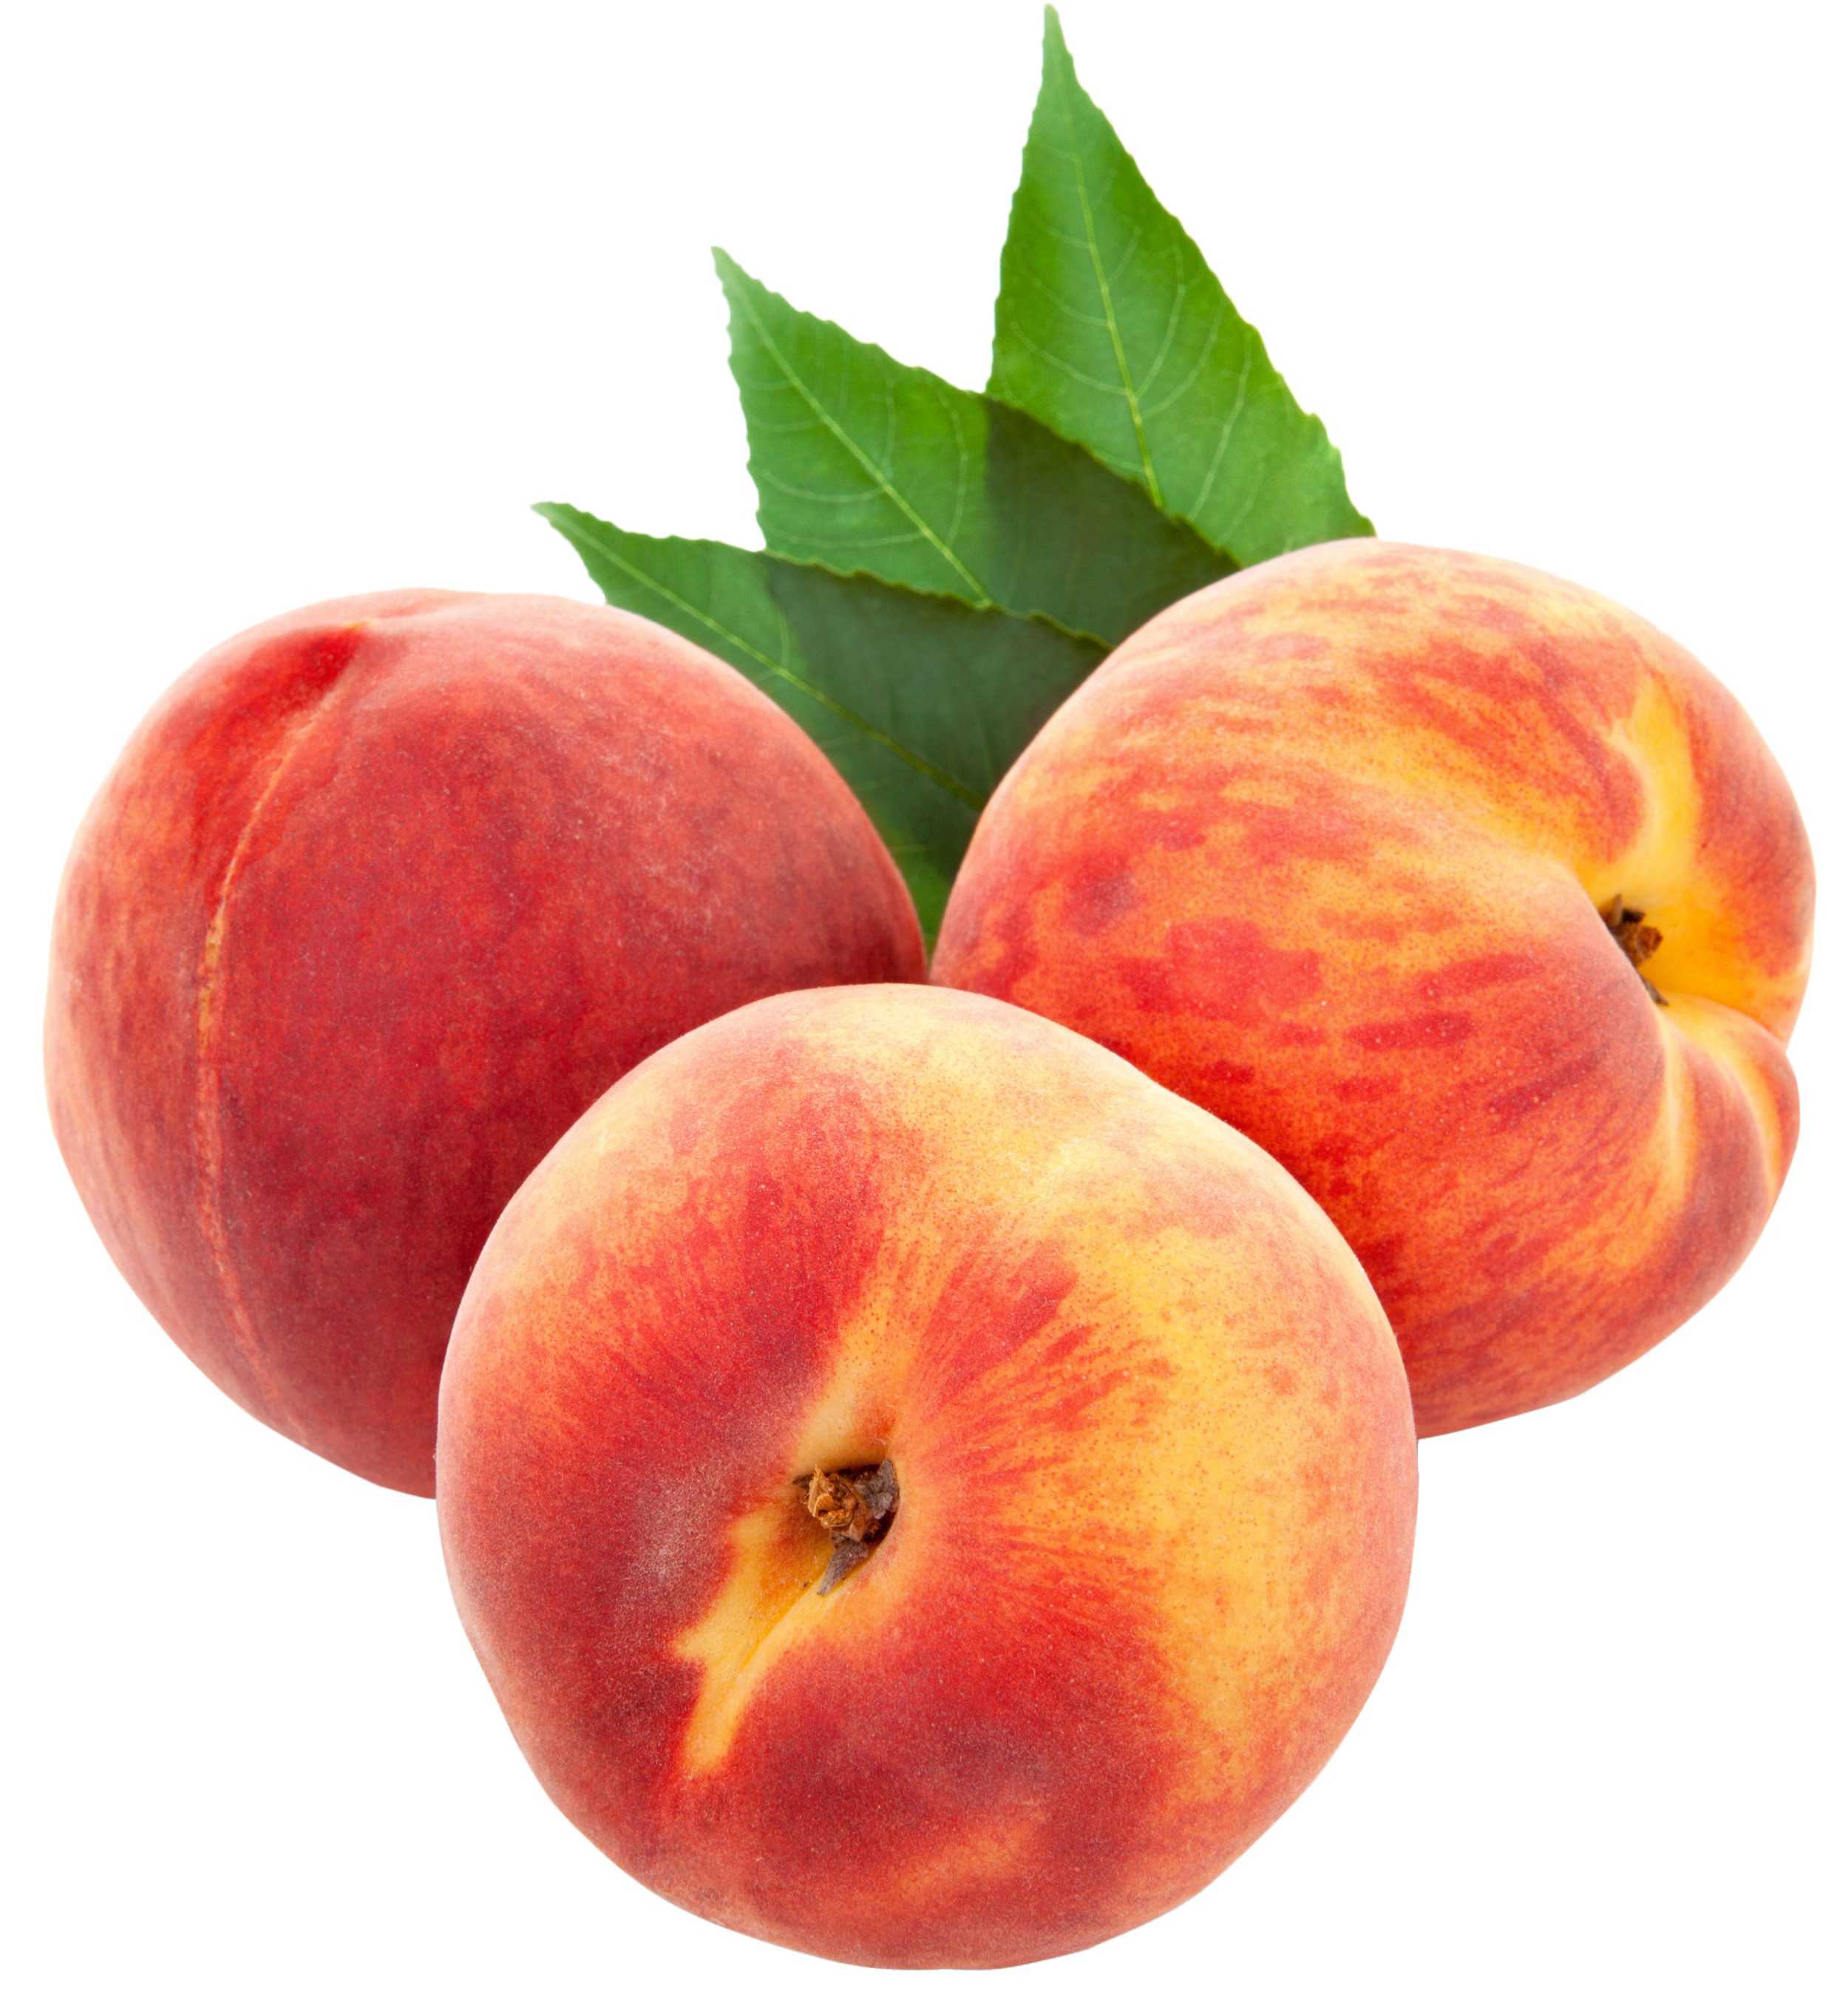 Peach Image Png image #41696